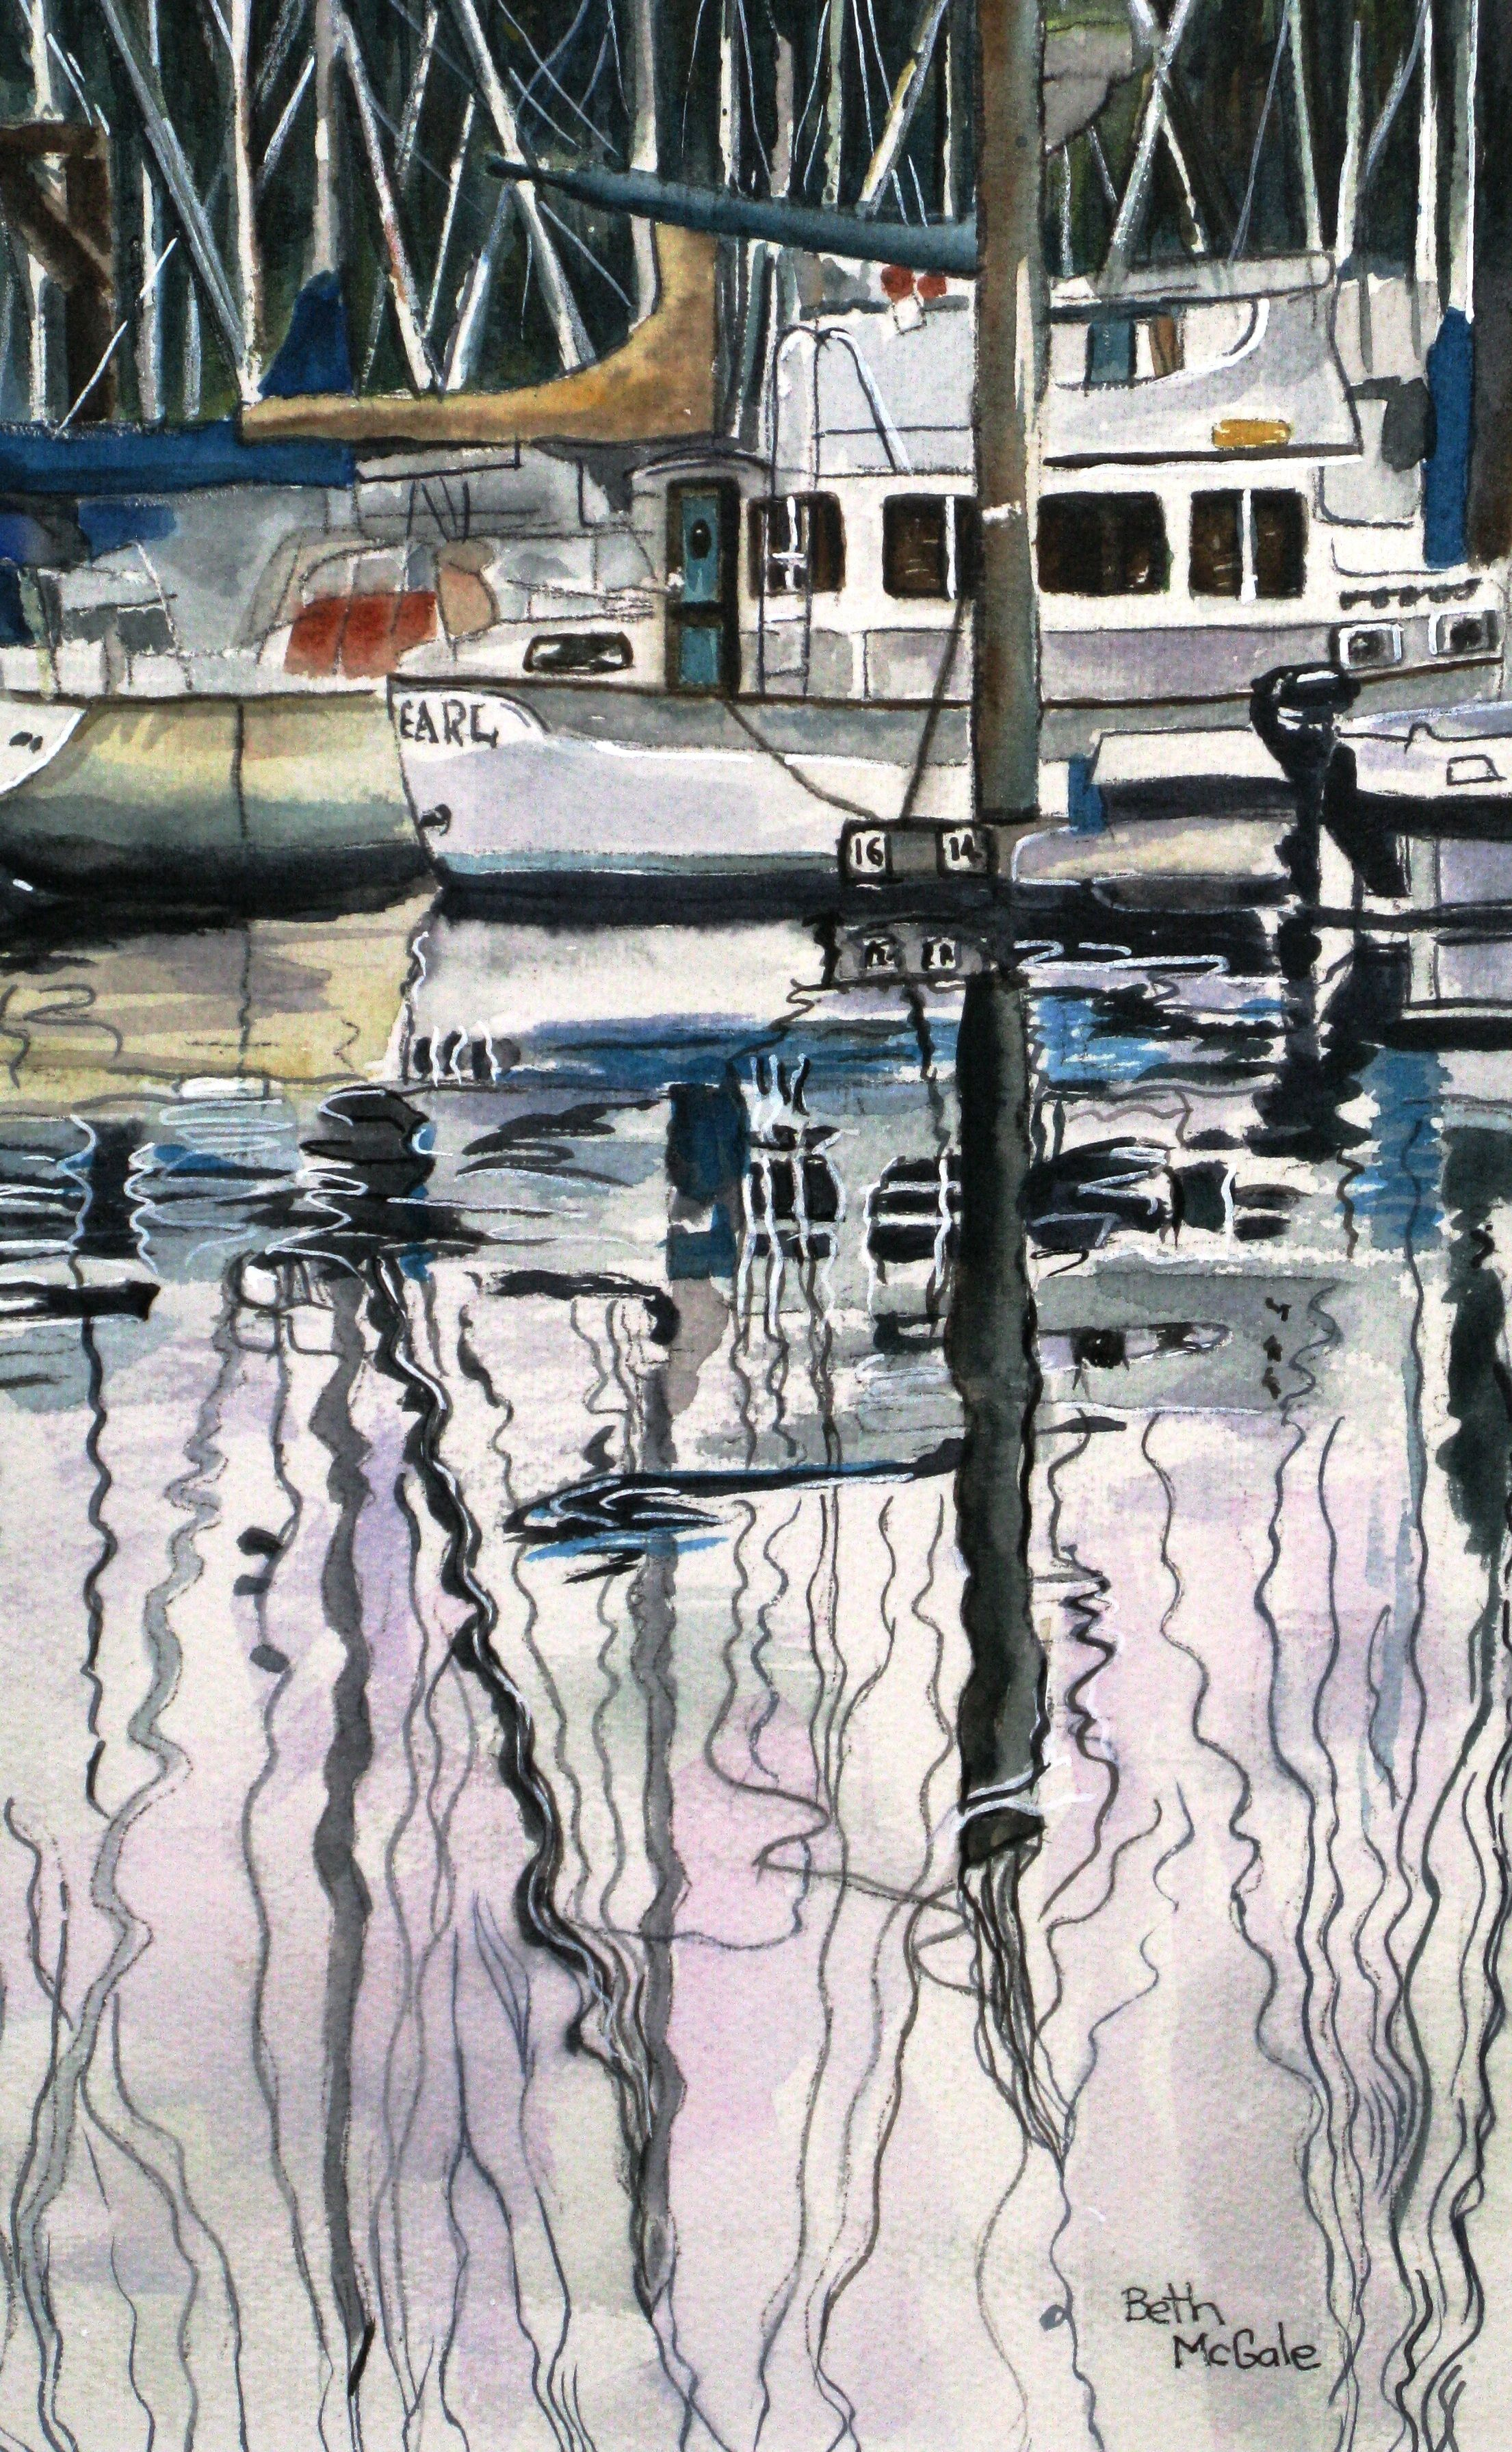 Harbour Dance British Columbia Canada Watercolour On Paper By Beth Mcgale Watercolor Boat Architecture Painting Watercolor Landscape